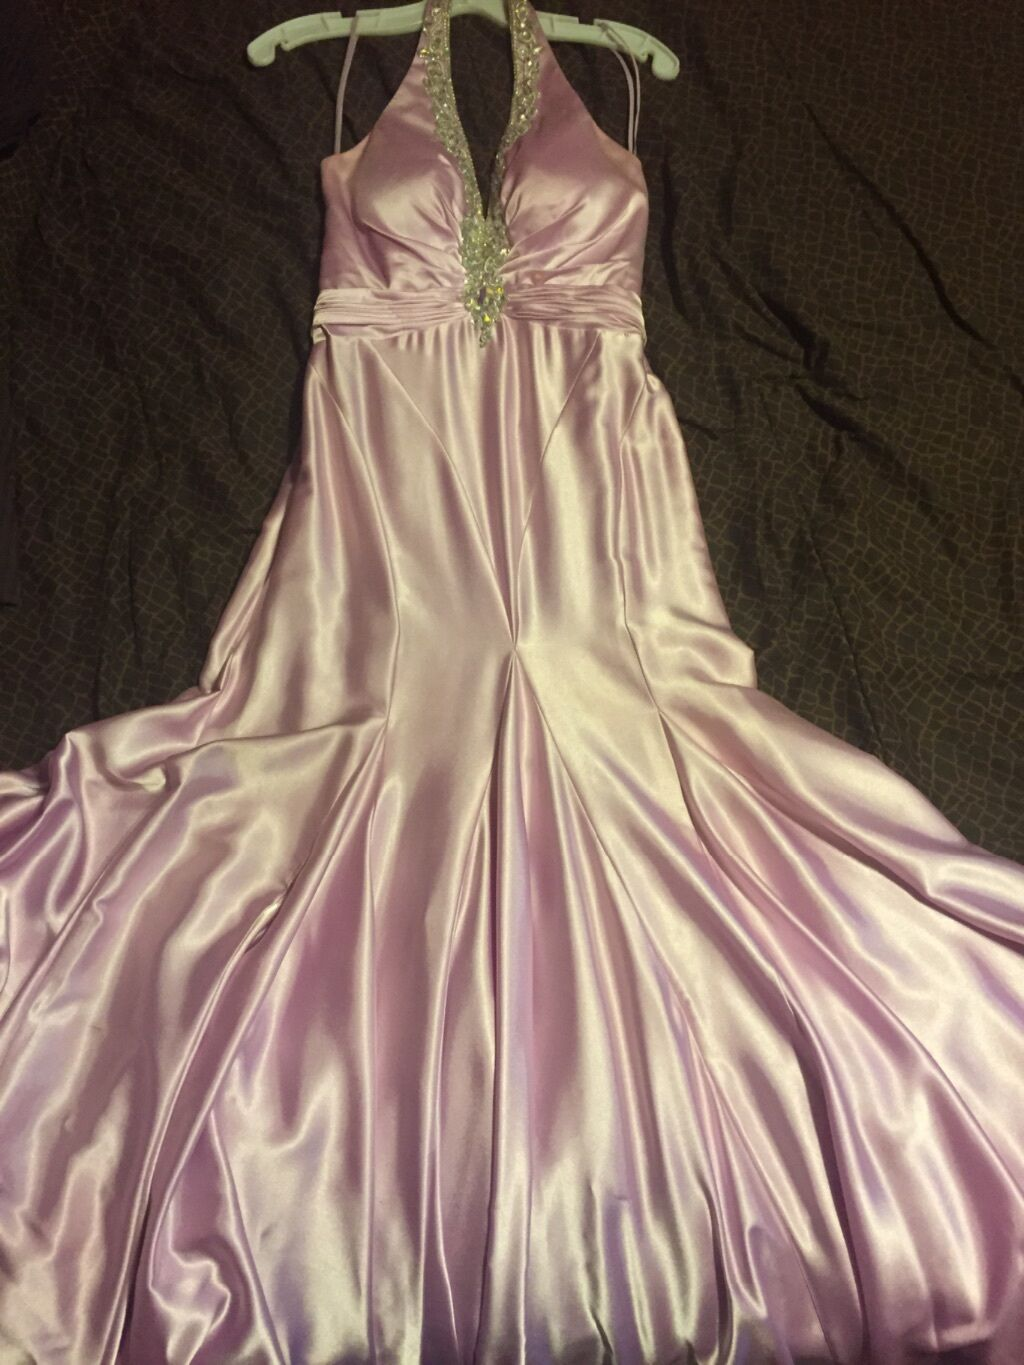 Party dress - image 1